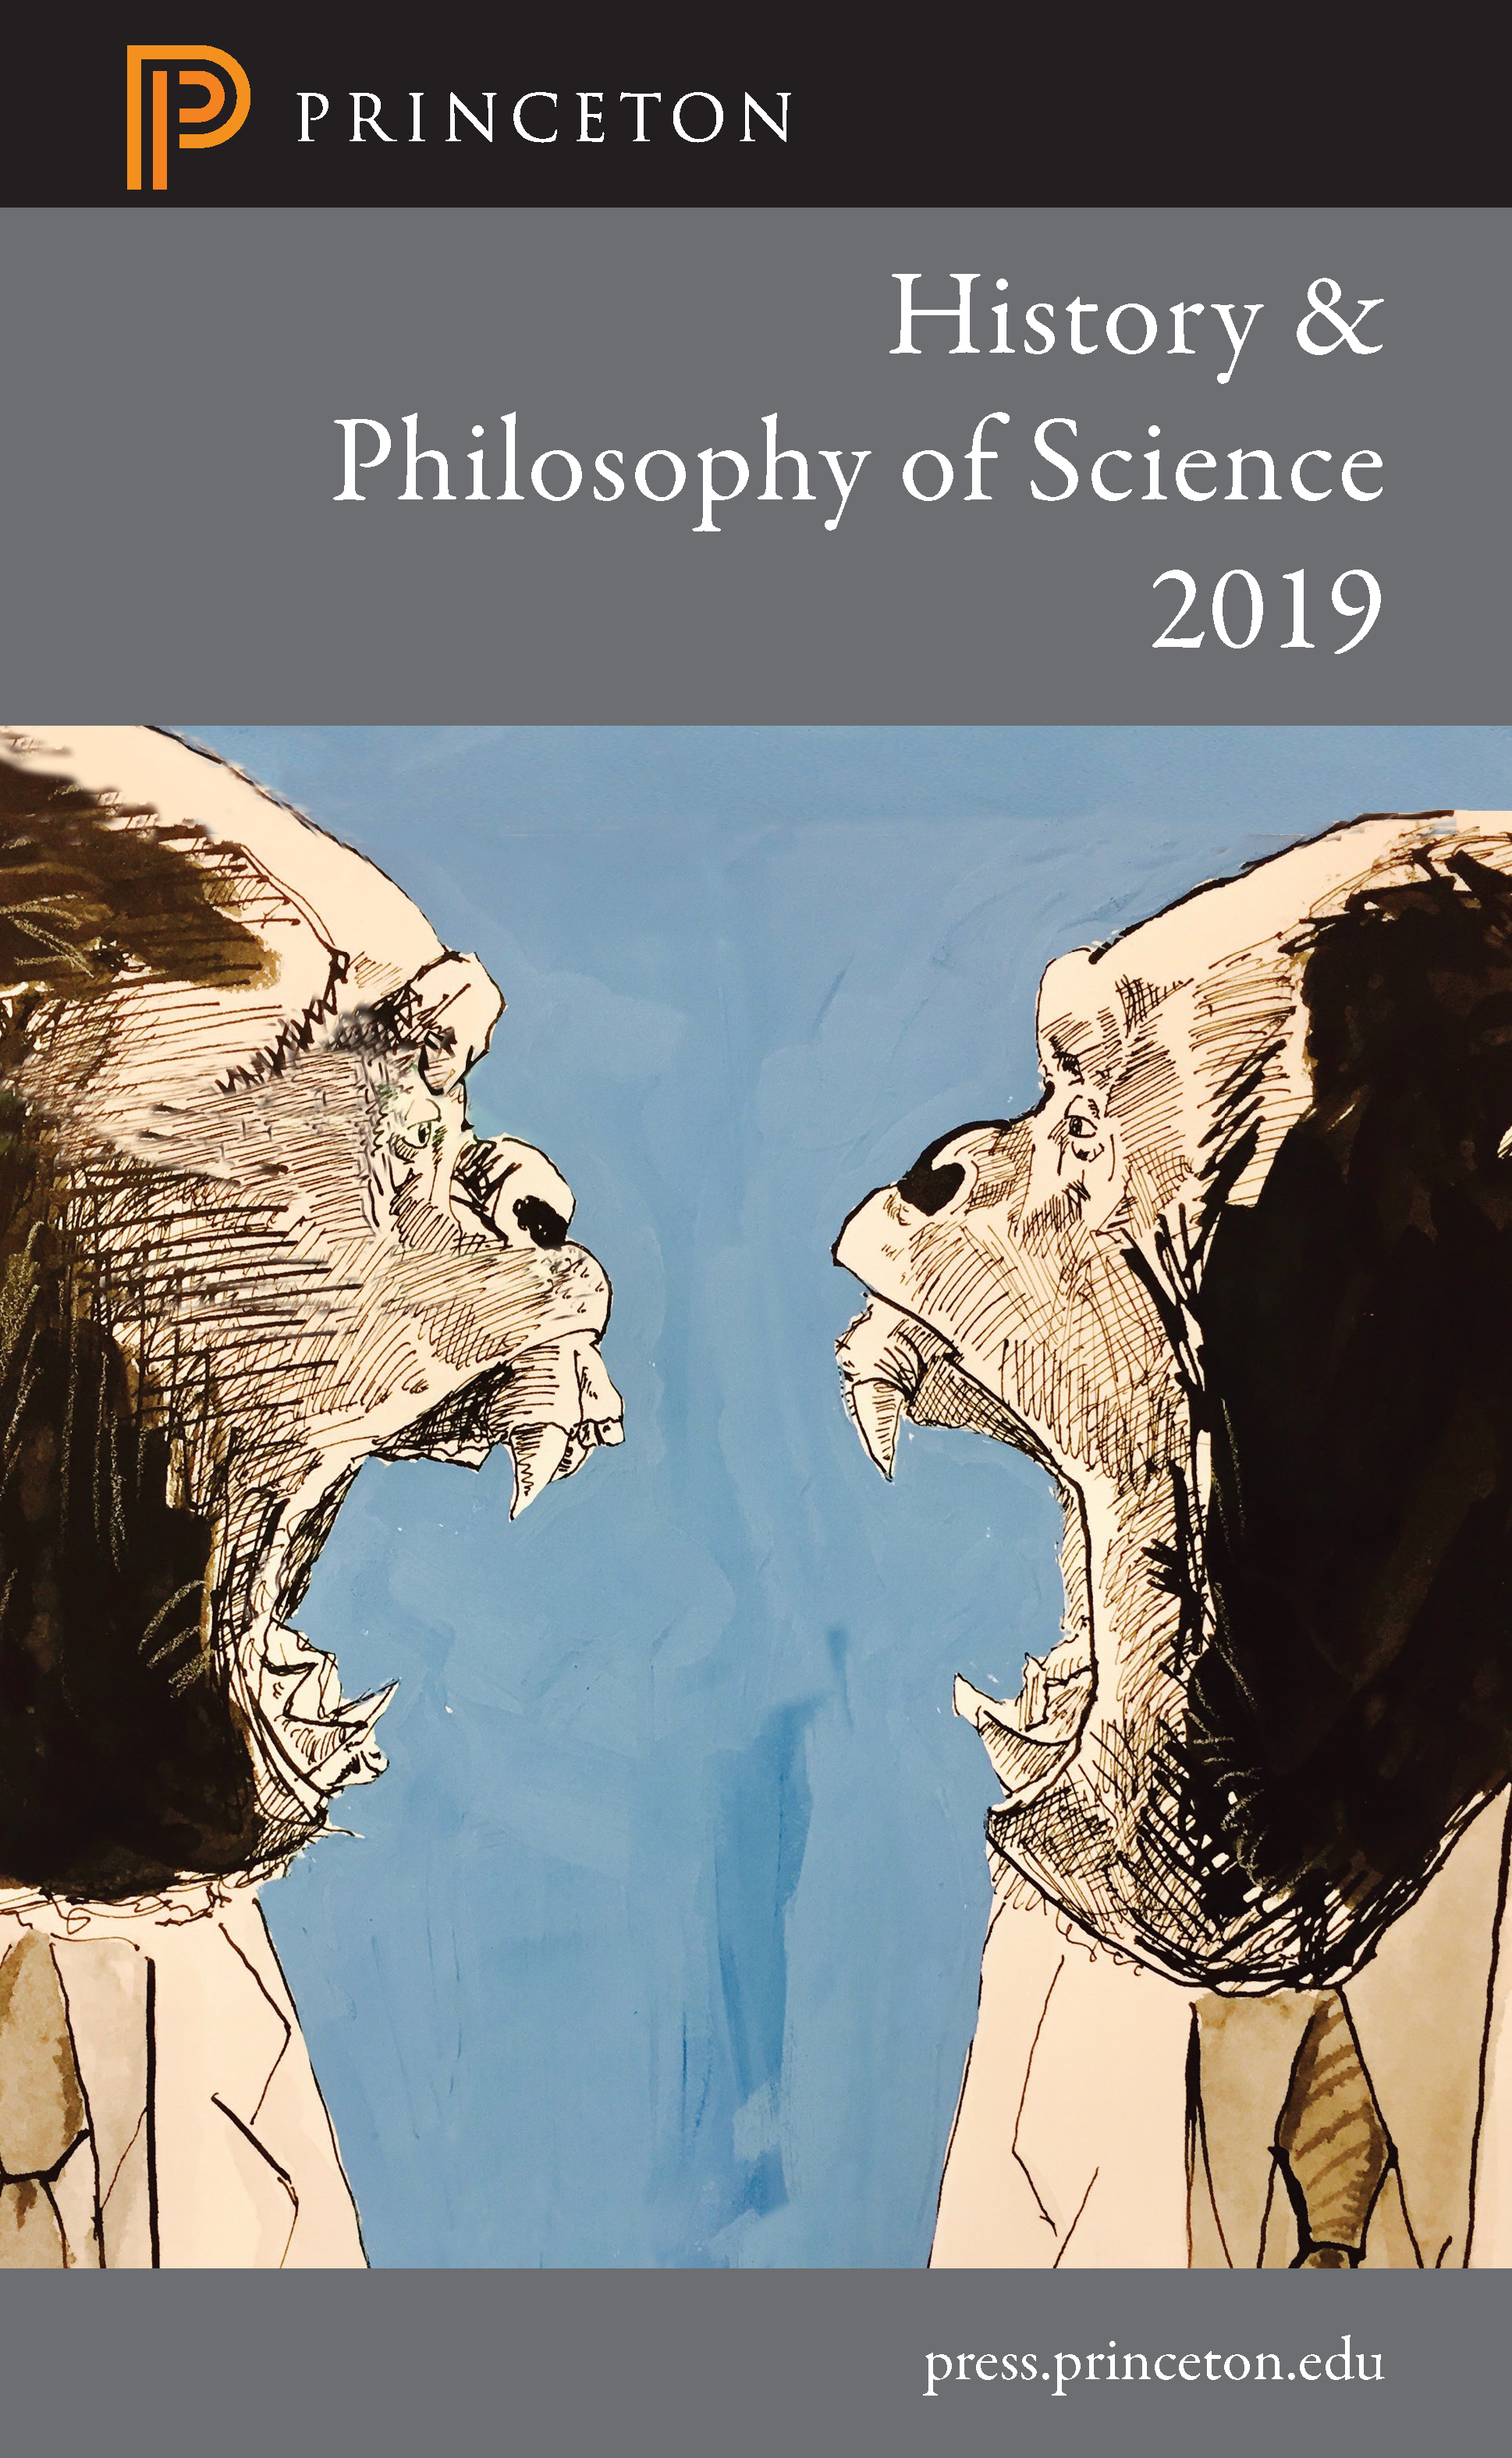 History & Philosophy of Science 2019 Catalog